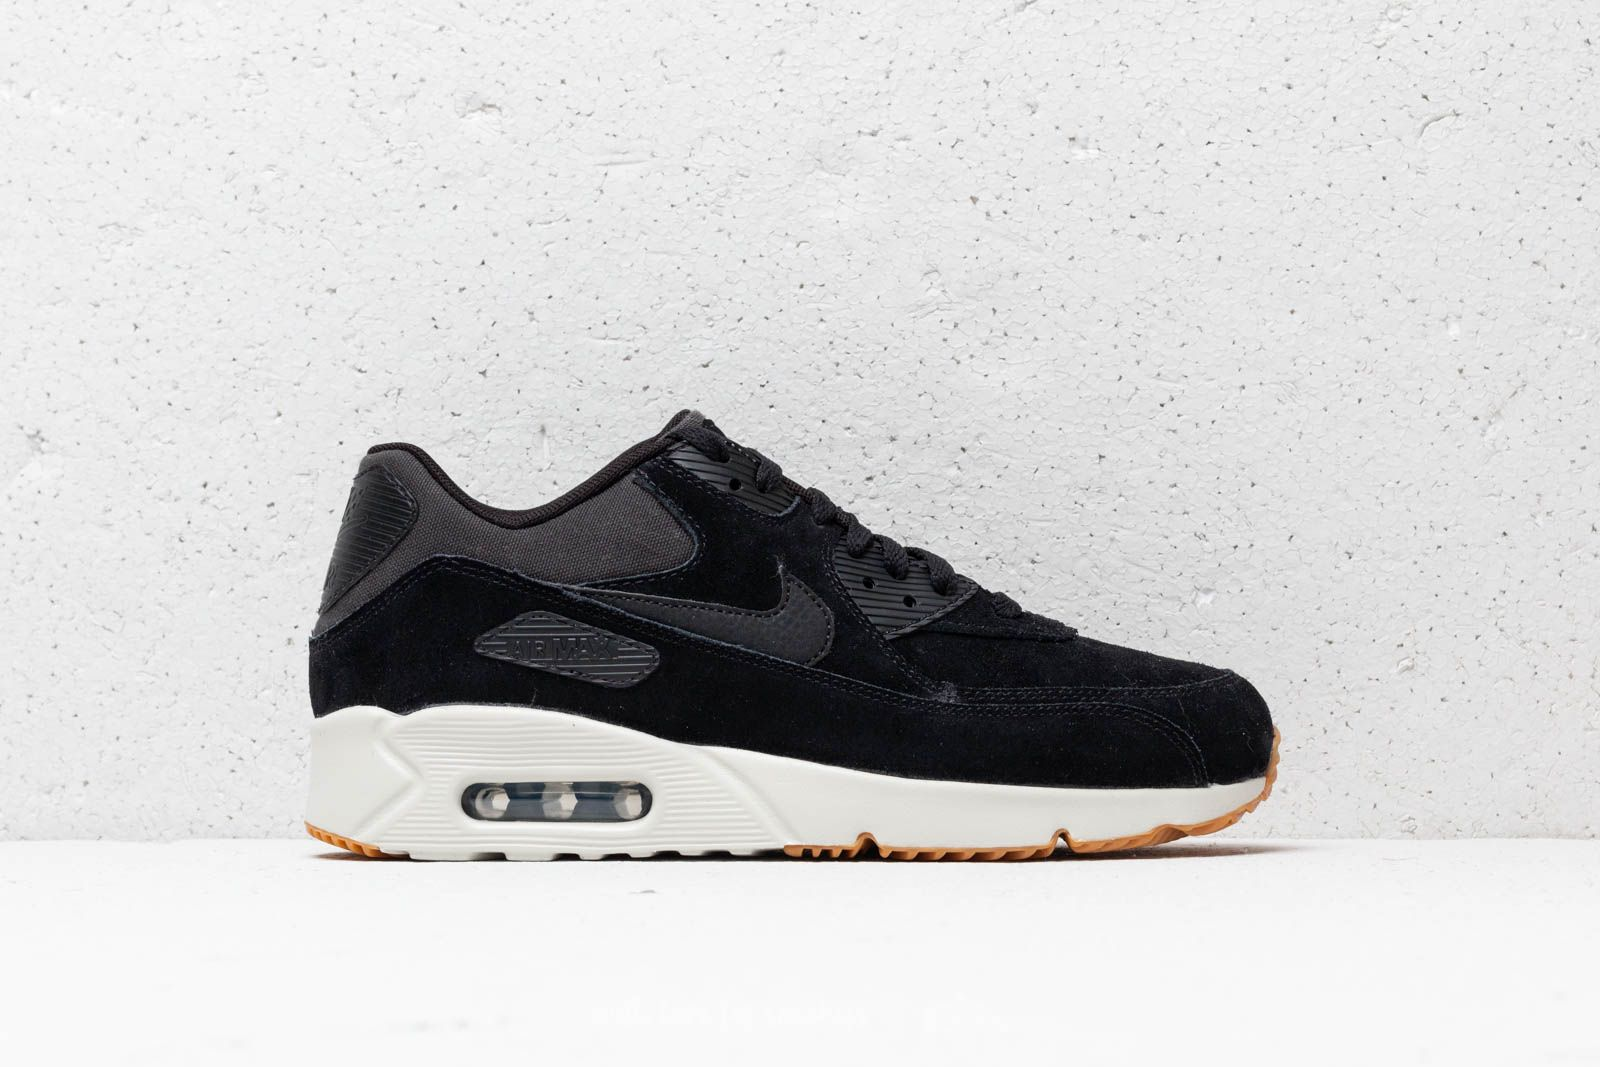 6ccd81de9d Nike Air Max 90 Ultra 2.0 Leather Black/ Black-Light Bone la un preț